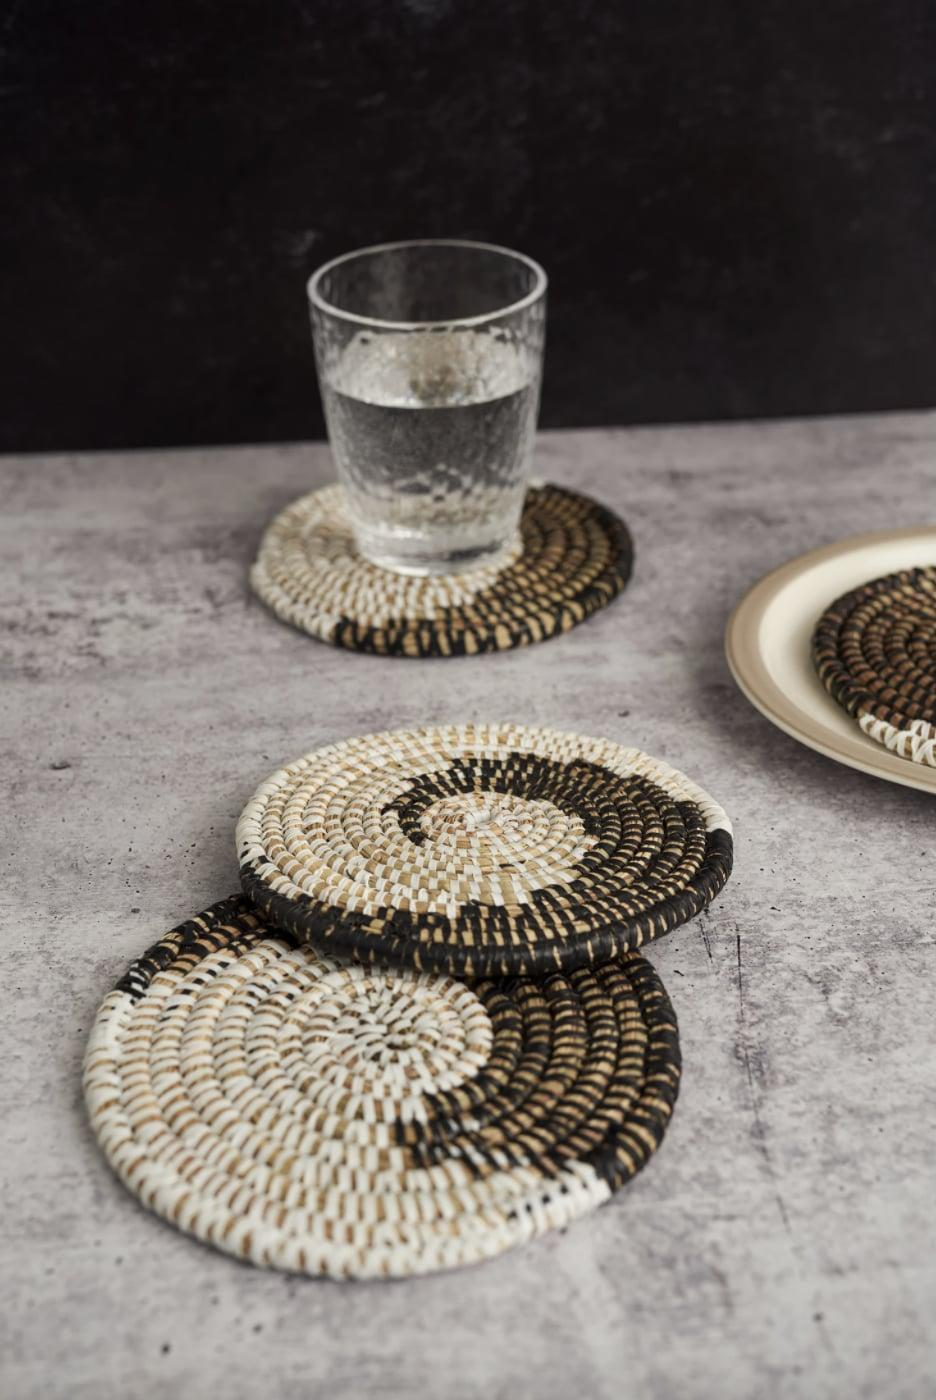 <p>These <span>Expedition Subsahara Badara Woven Coasters (Set of 4)</span> ($35) make a polished and textured addition to any table.</p>